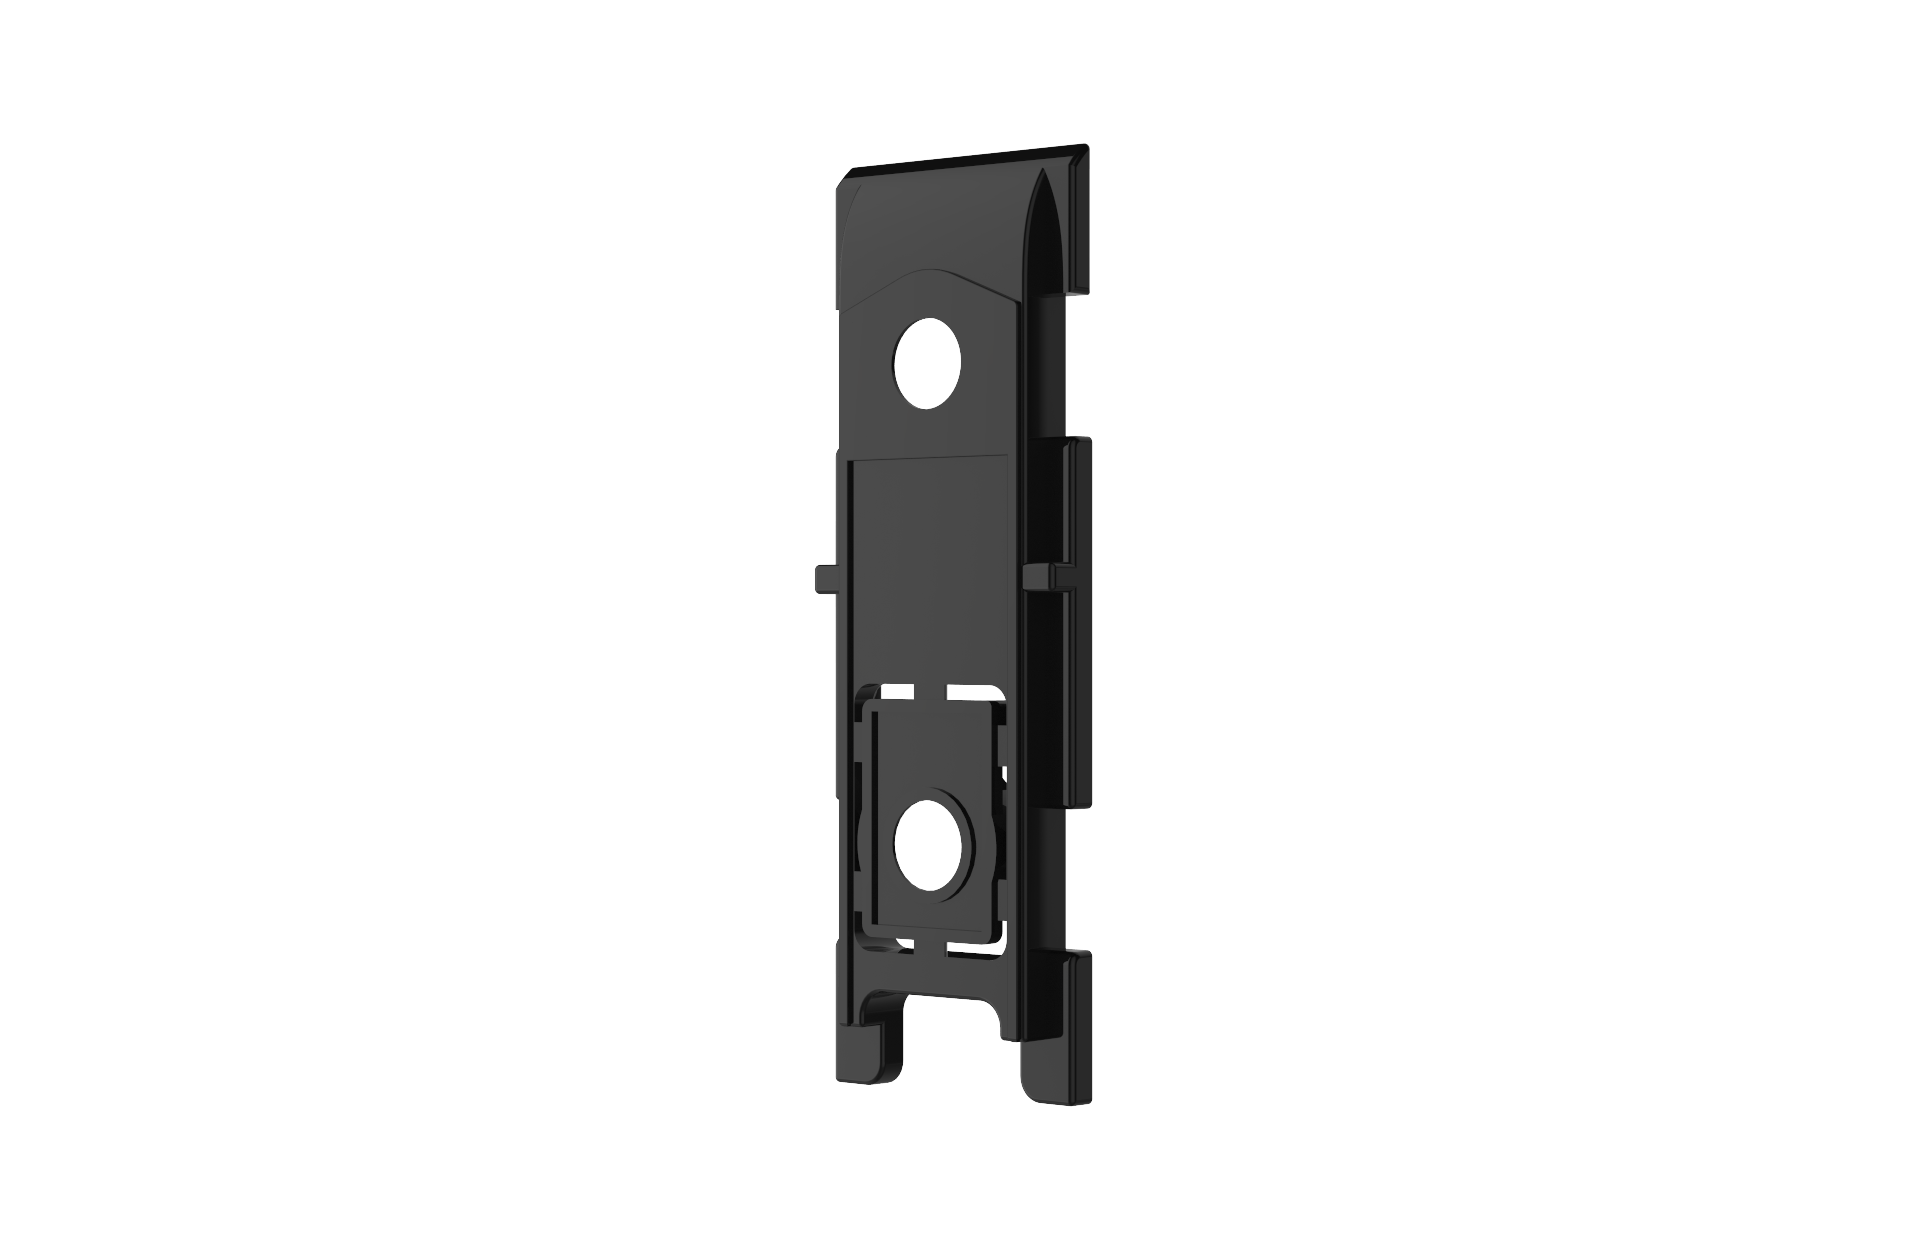 Smartbracket Ajax DoorProtect magnet black